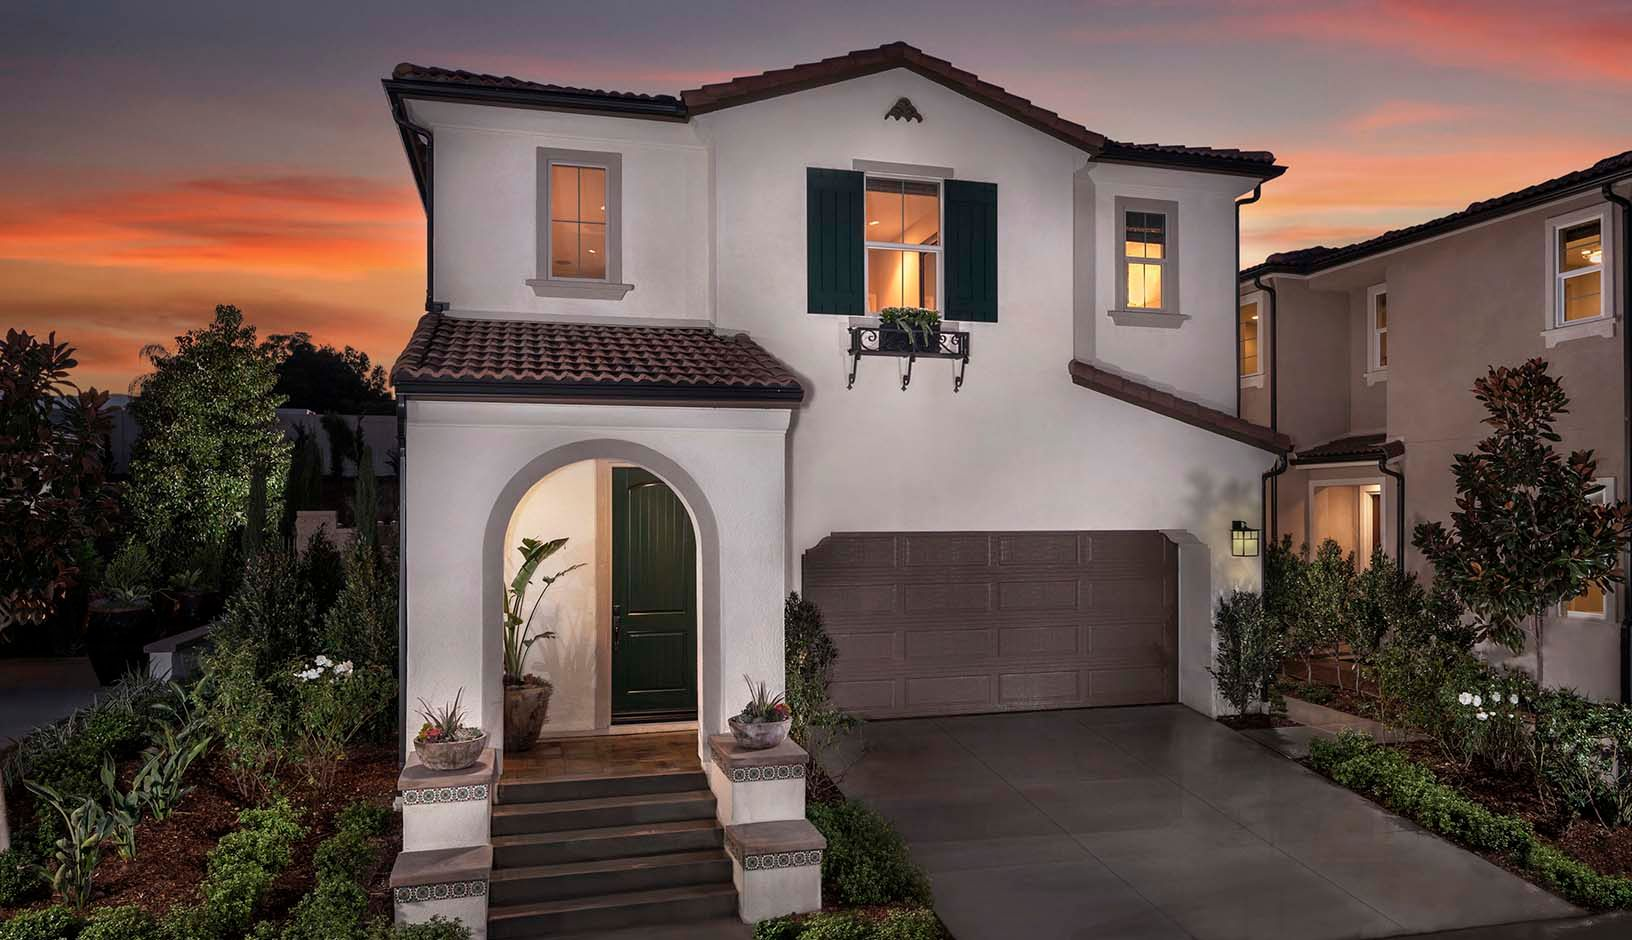 Terrassa Villas By TRI Pointe Homes In Riverside San Bernardino California